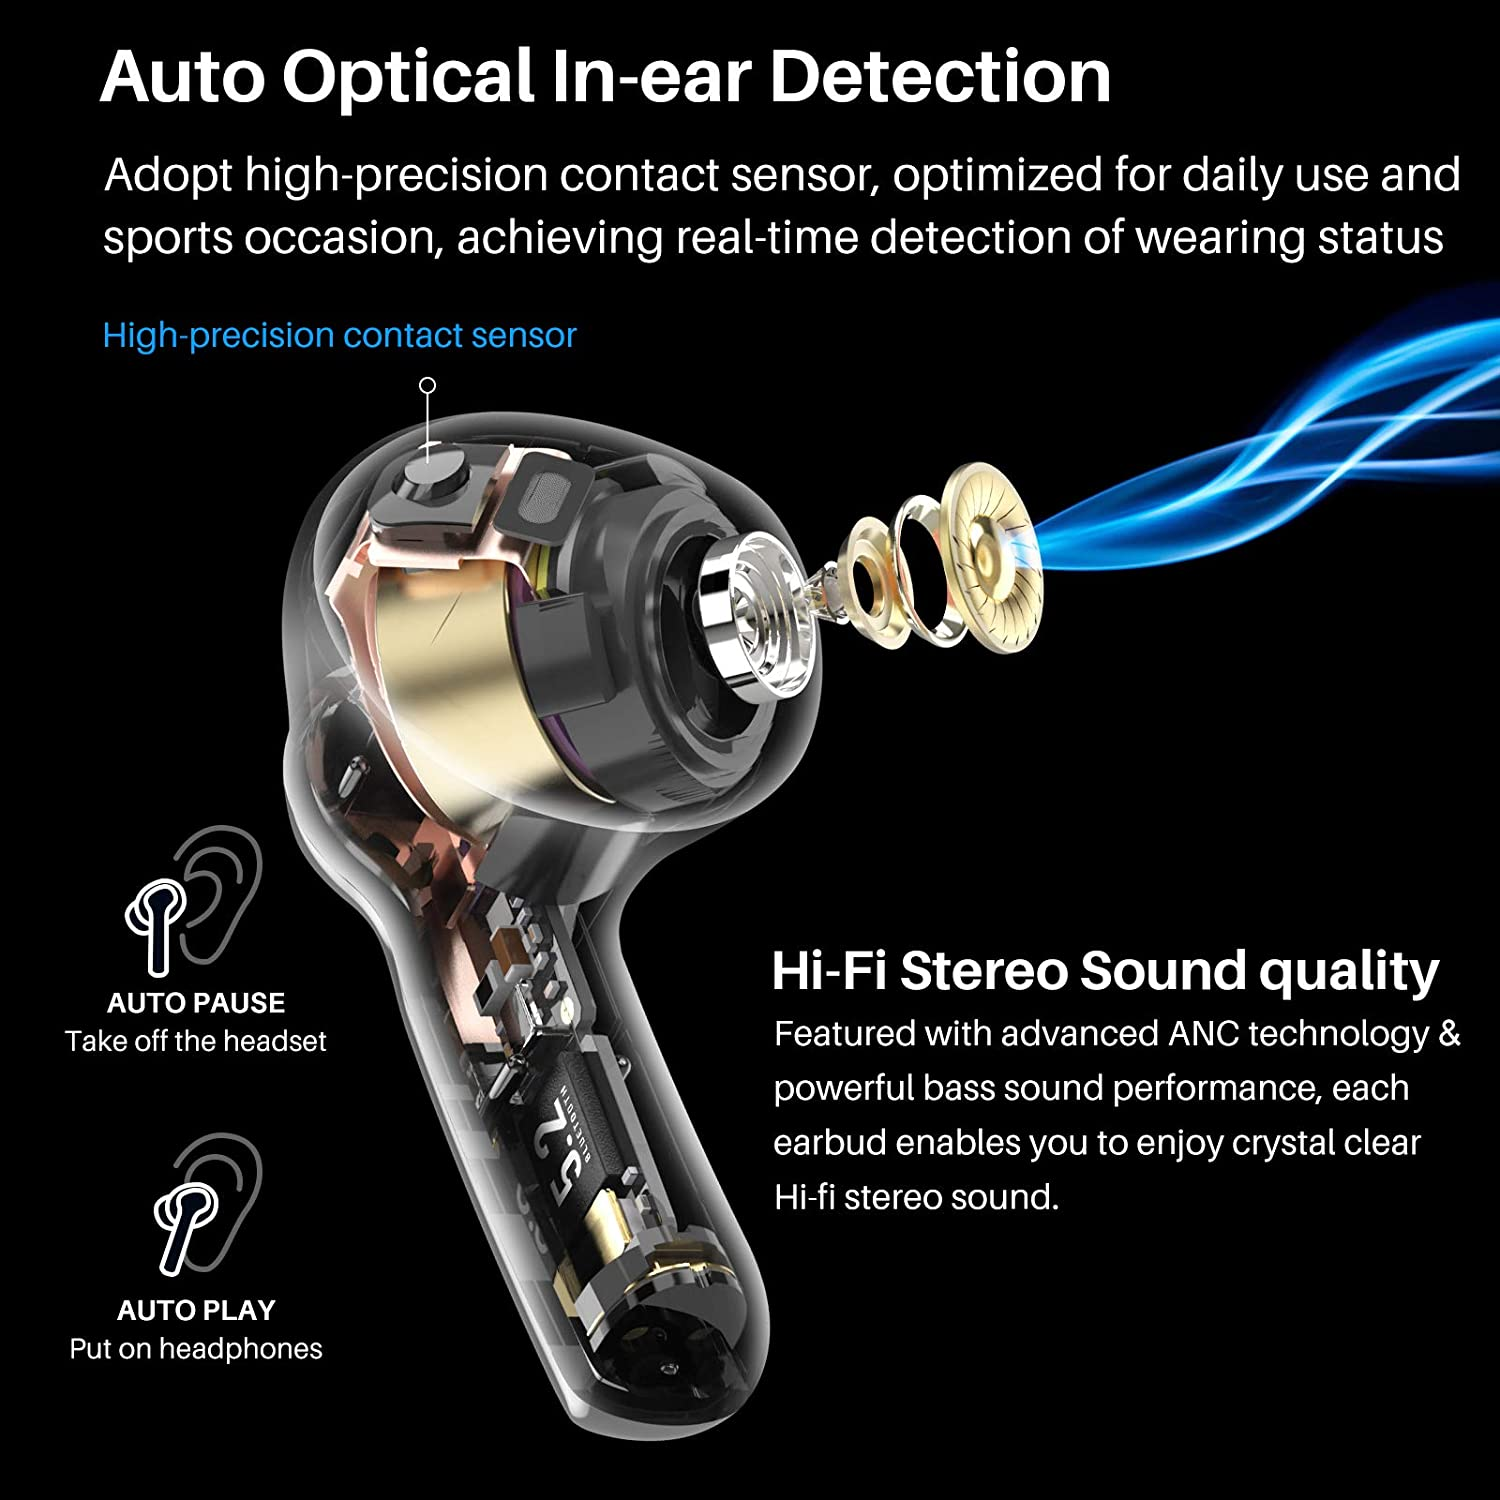 TOZO NC2 Earphone Bluetooth 5.2 Wireless Earbuds ANC Headphones IPX6 Stereo Bass Tws Headset Noise Cancelling Earpiece enlarge